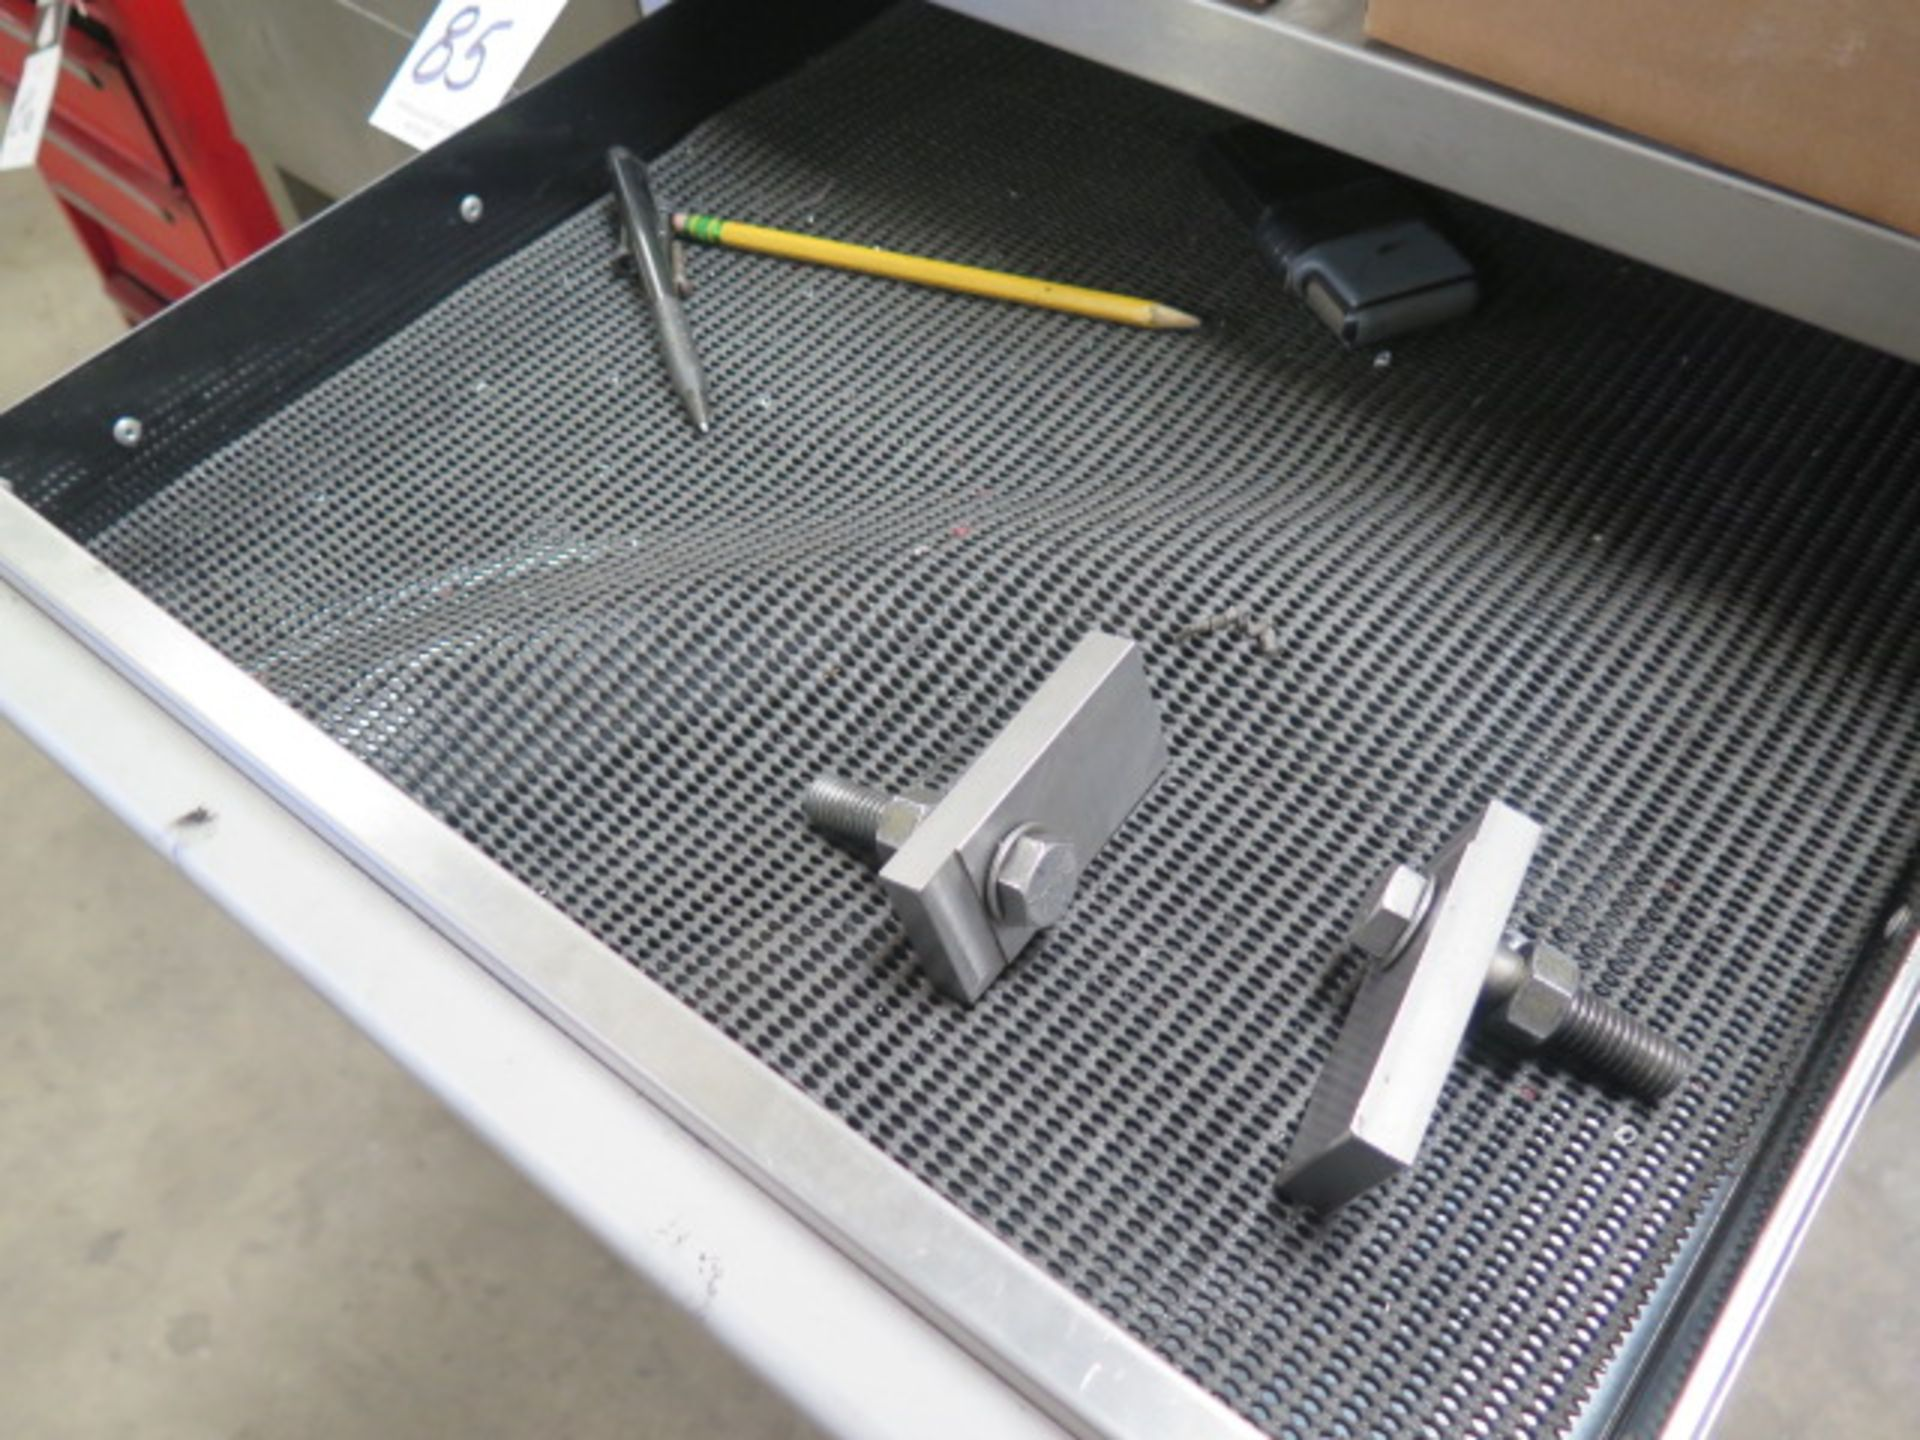 6-Drawer Tooling Cabinet w/ Chuck Jaws (SOLD AS-IS - NO WARRANTY) - Image 3 of 9